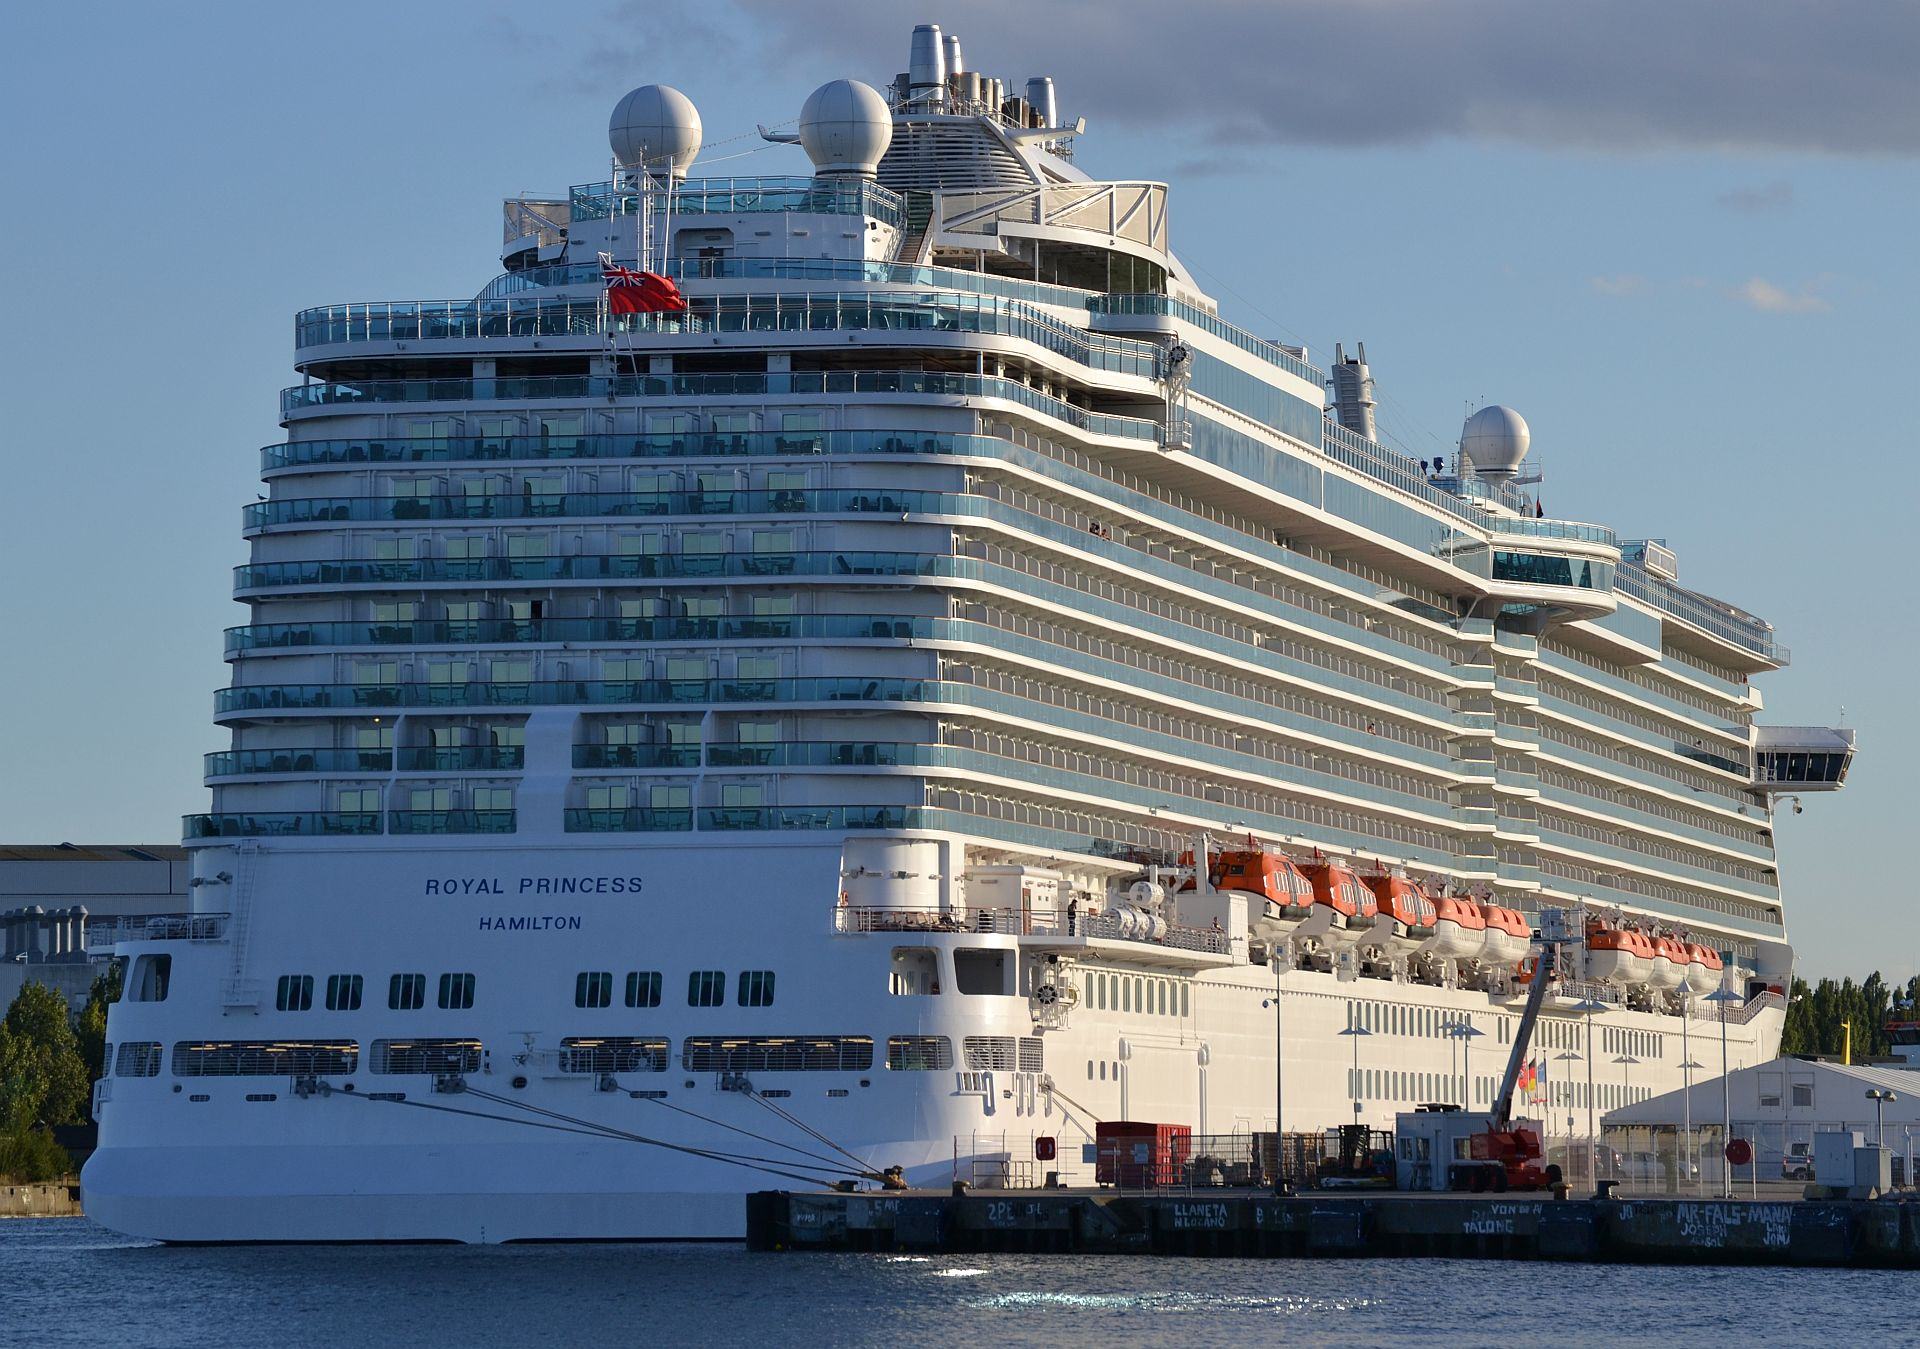 Royal Princess - Itinerary Schedule, Current Position Royal princess ship photos